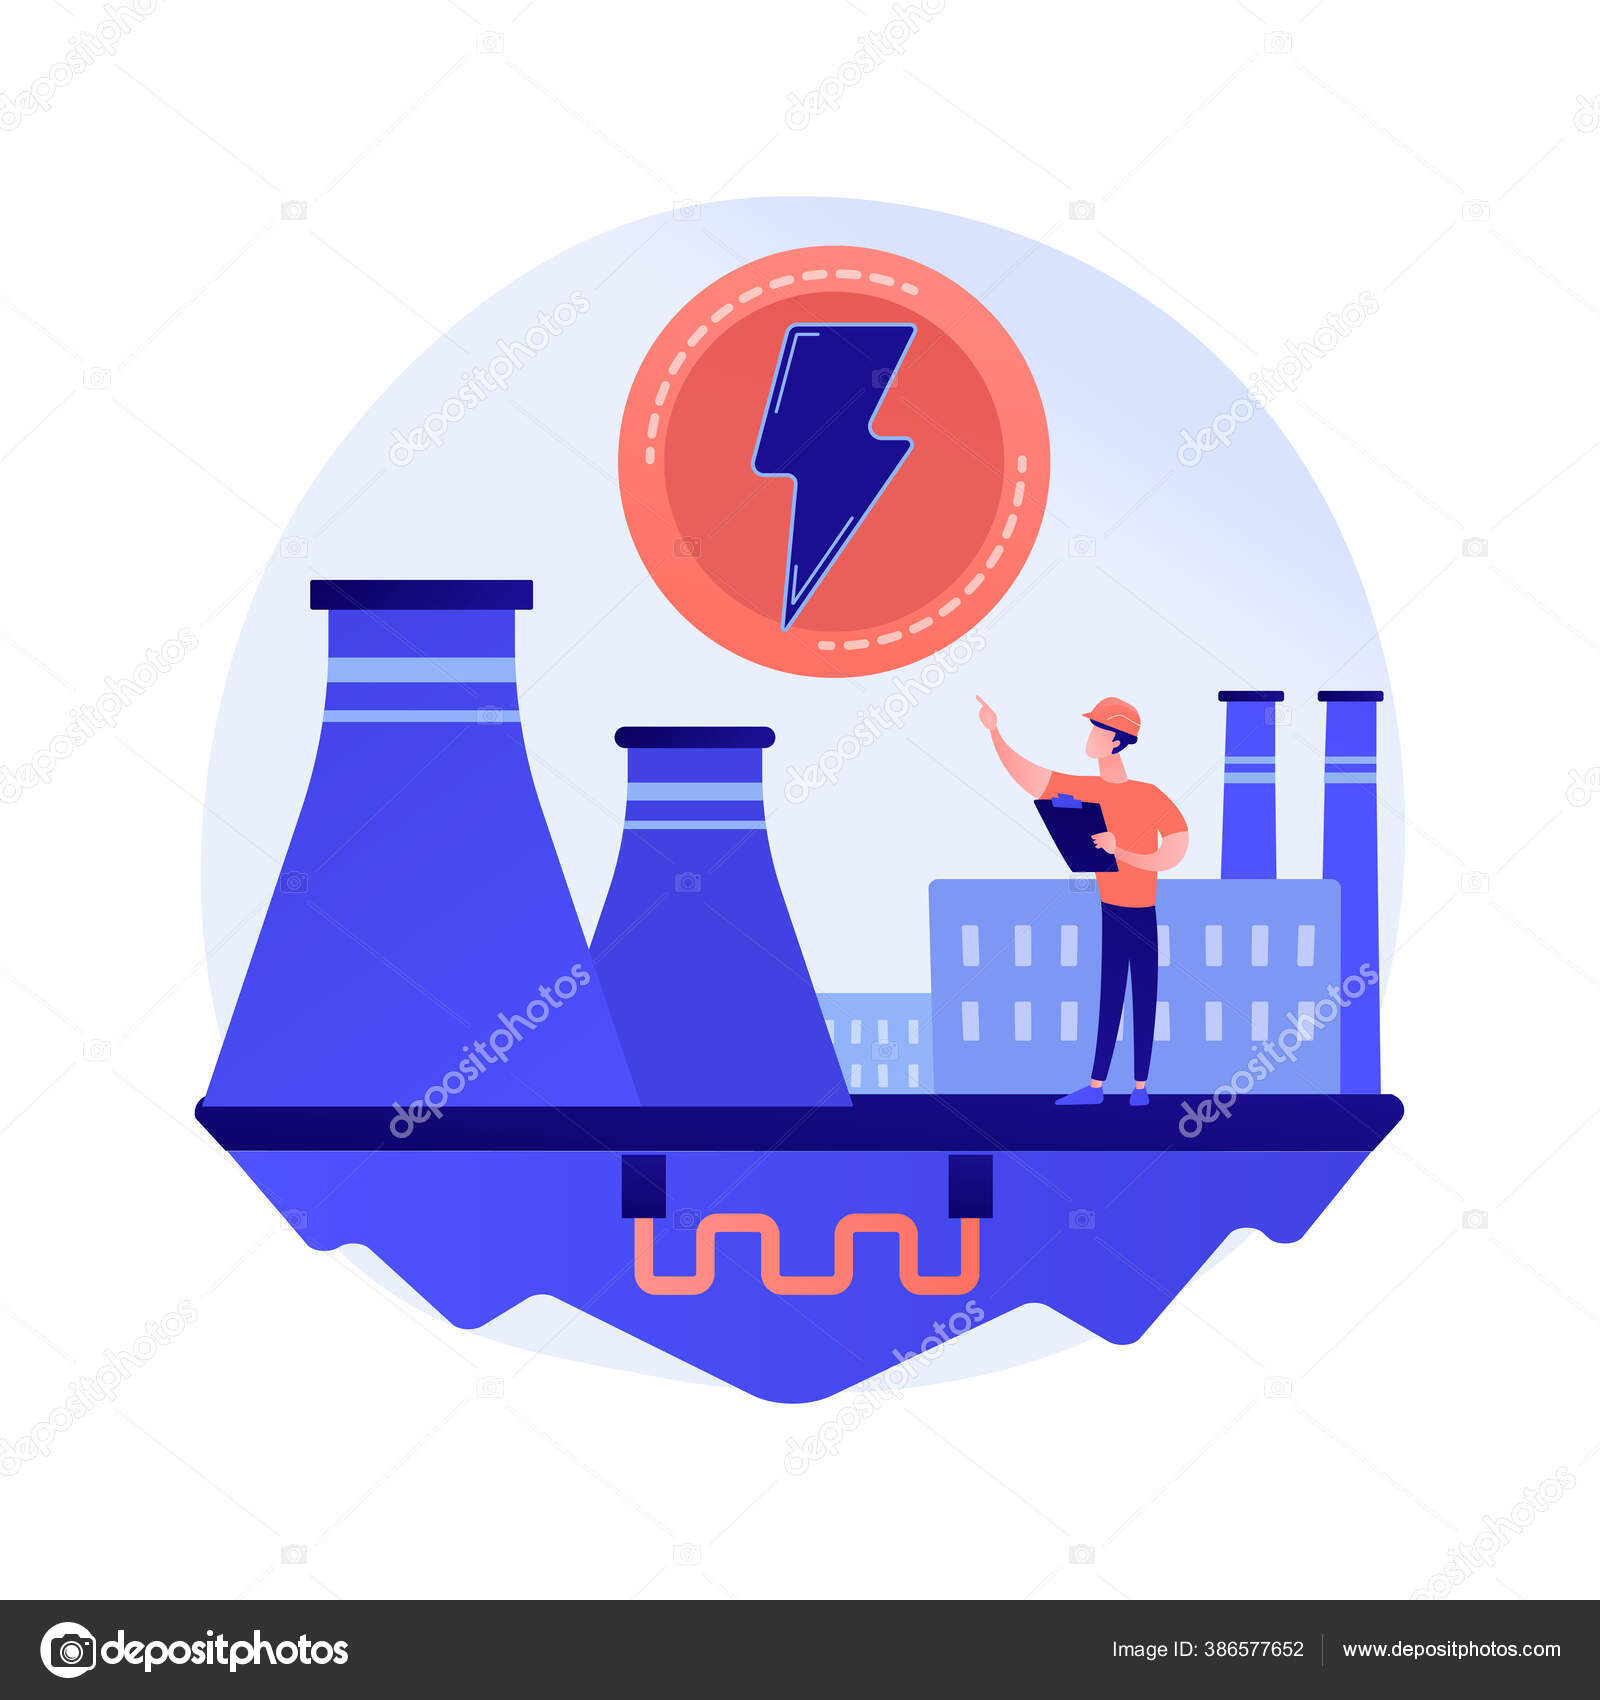 Power Plant Electric Industry Energy Production Electricity Generation Fabric Power Stock Vector C Visualgeneration 386577652